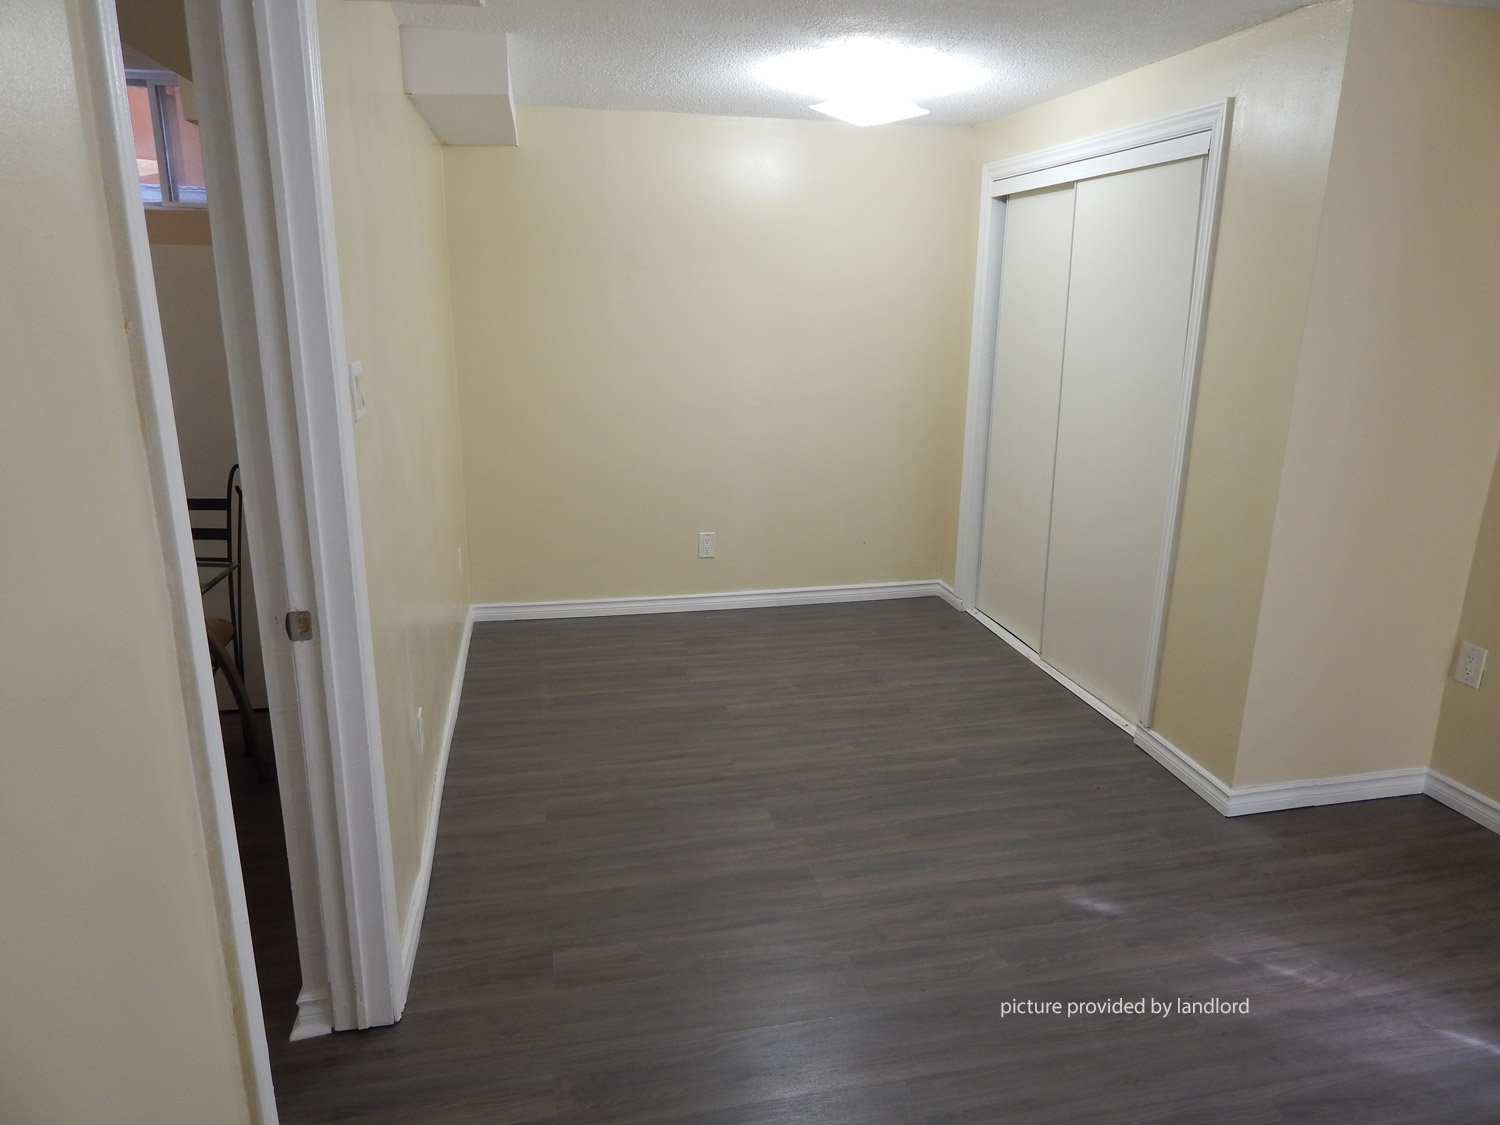 MAVIS-BRITANNIA, MISSISSAUGA , ON : 1 Bedroom for rent ...